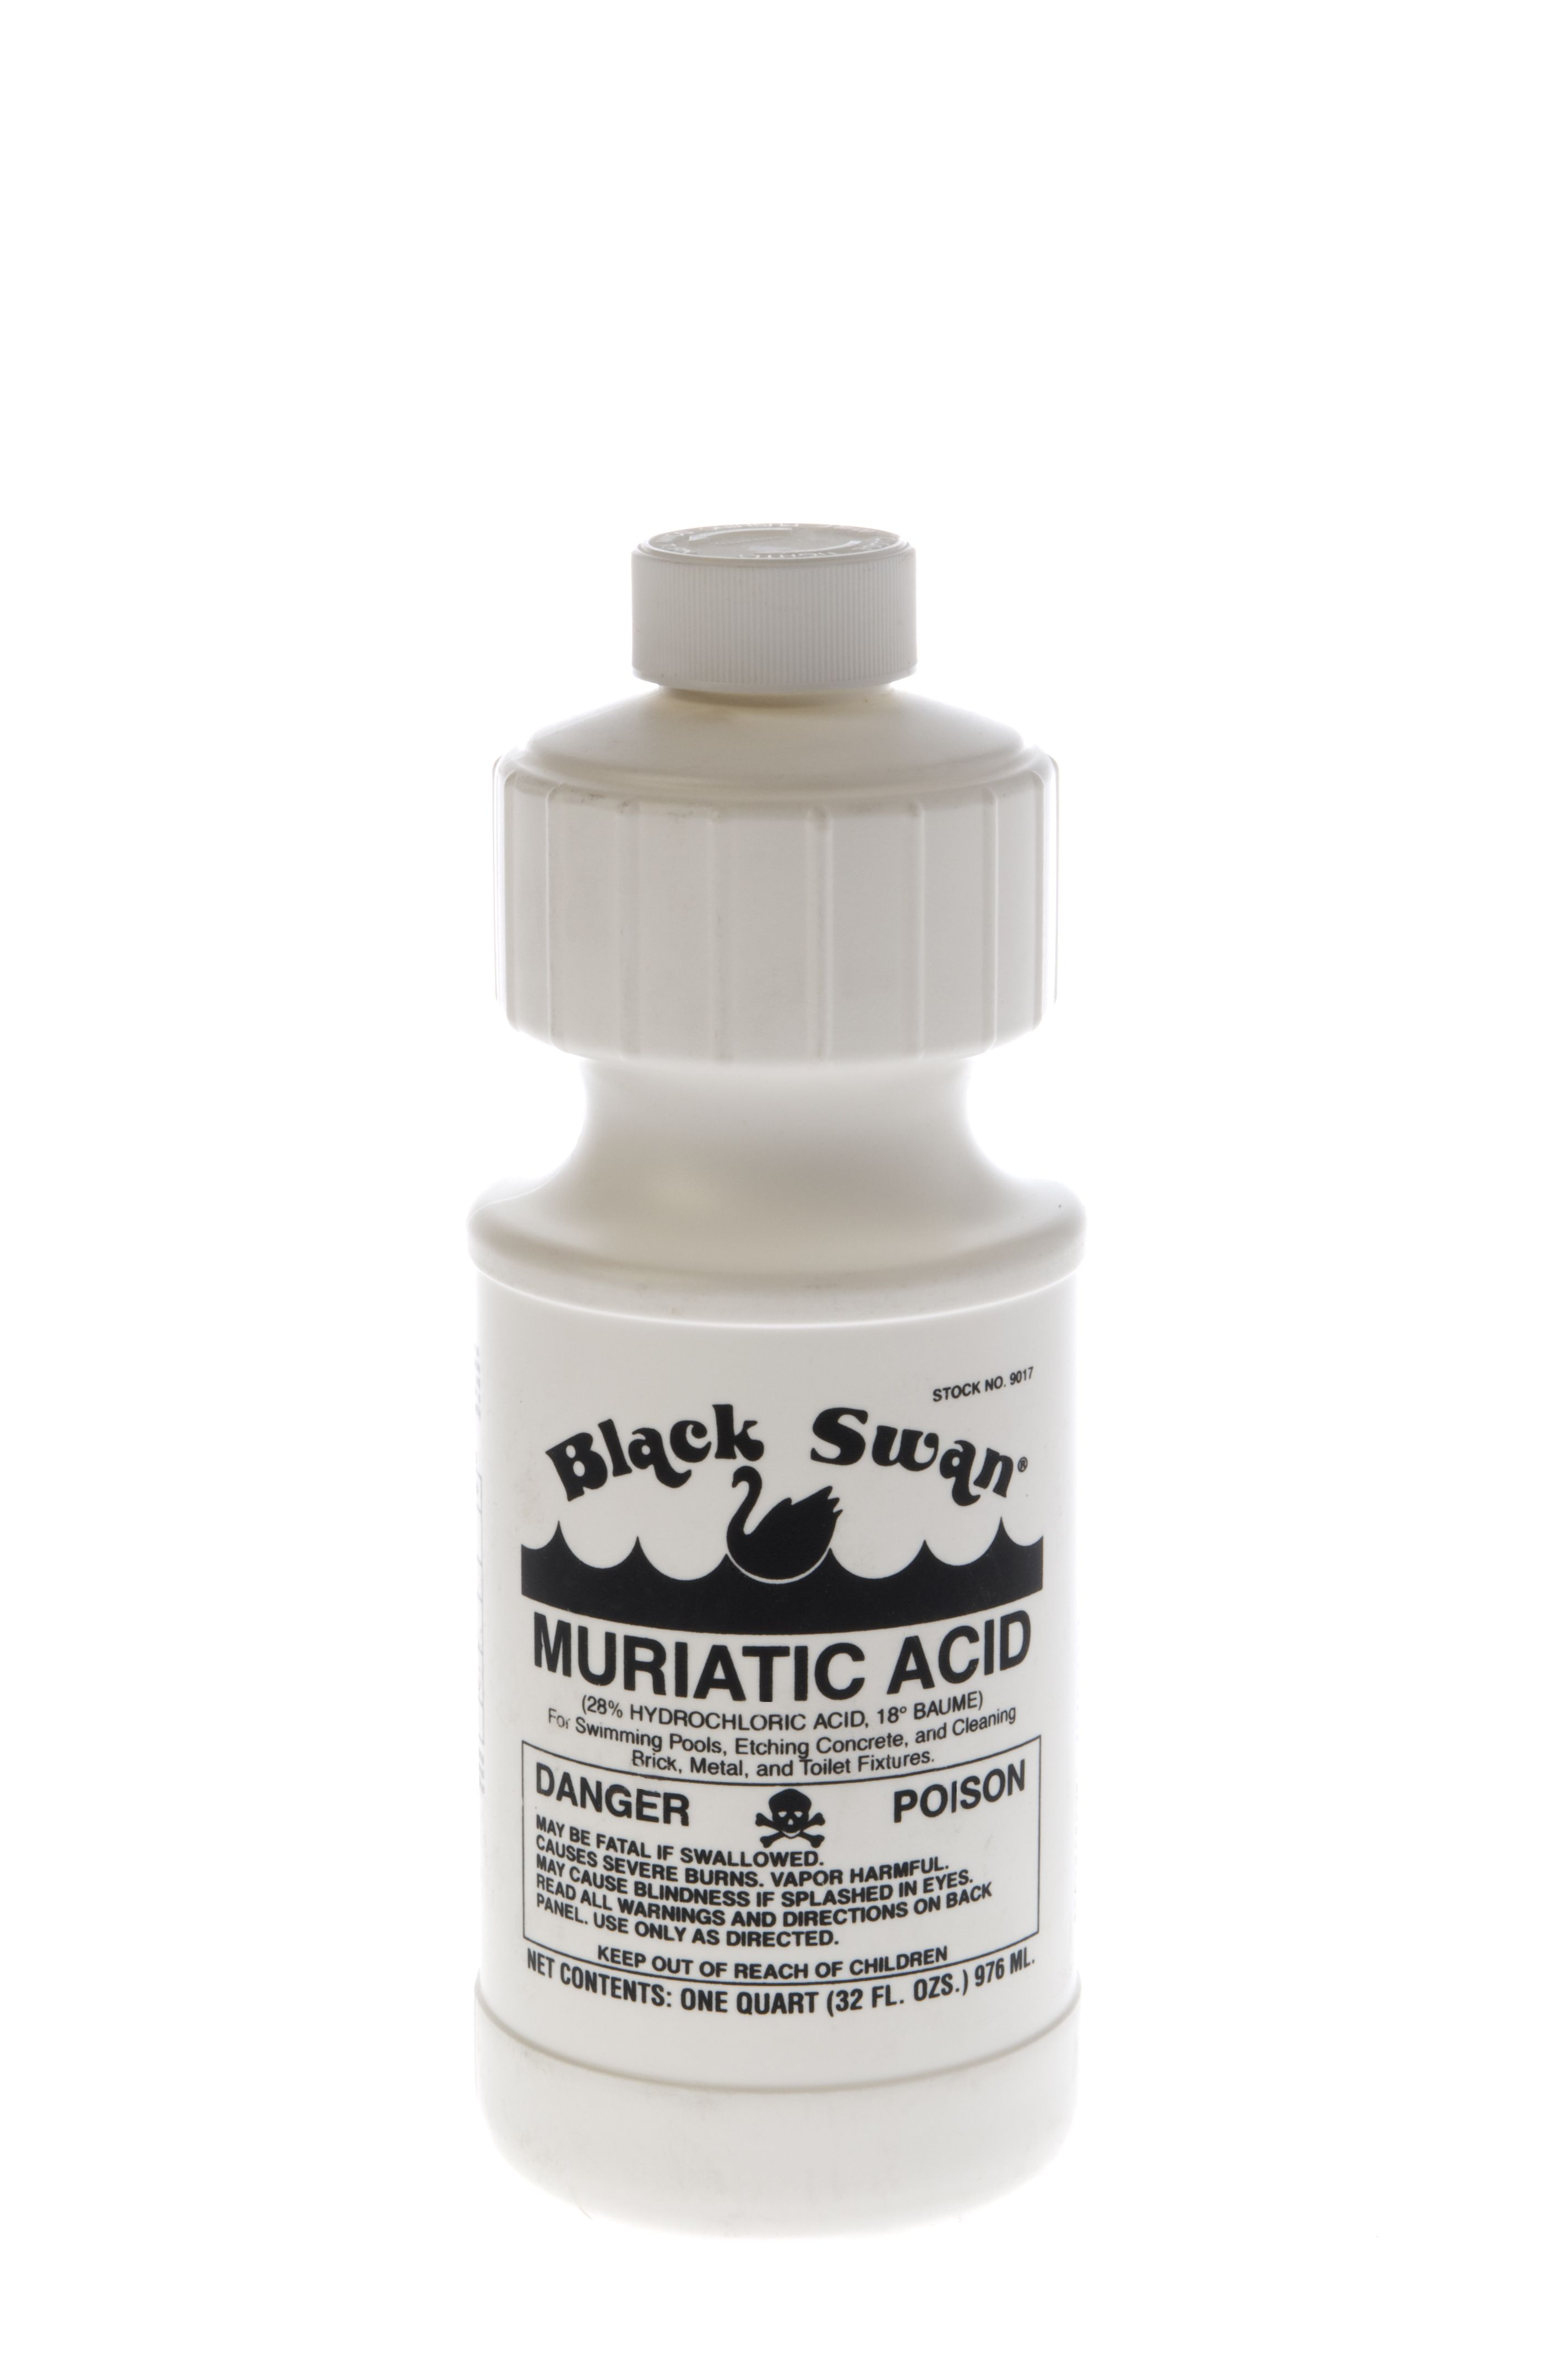 Black Swan's 18° Muriatic Acid is 28% hydrochloric acid, 18° Baume